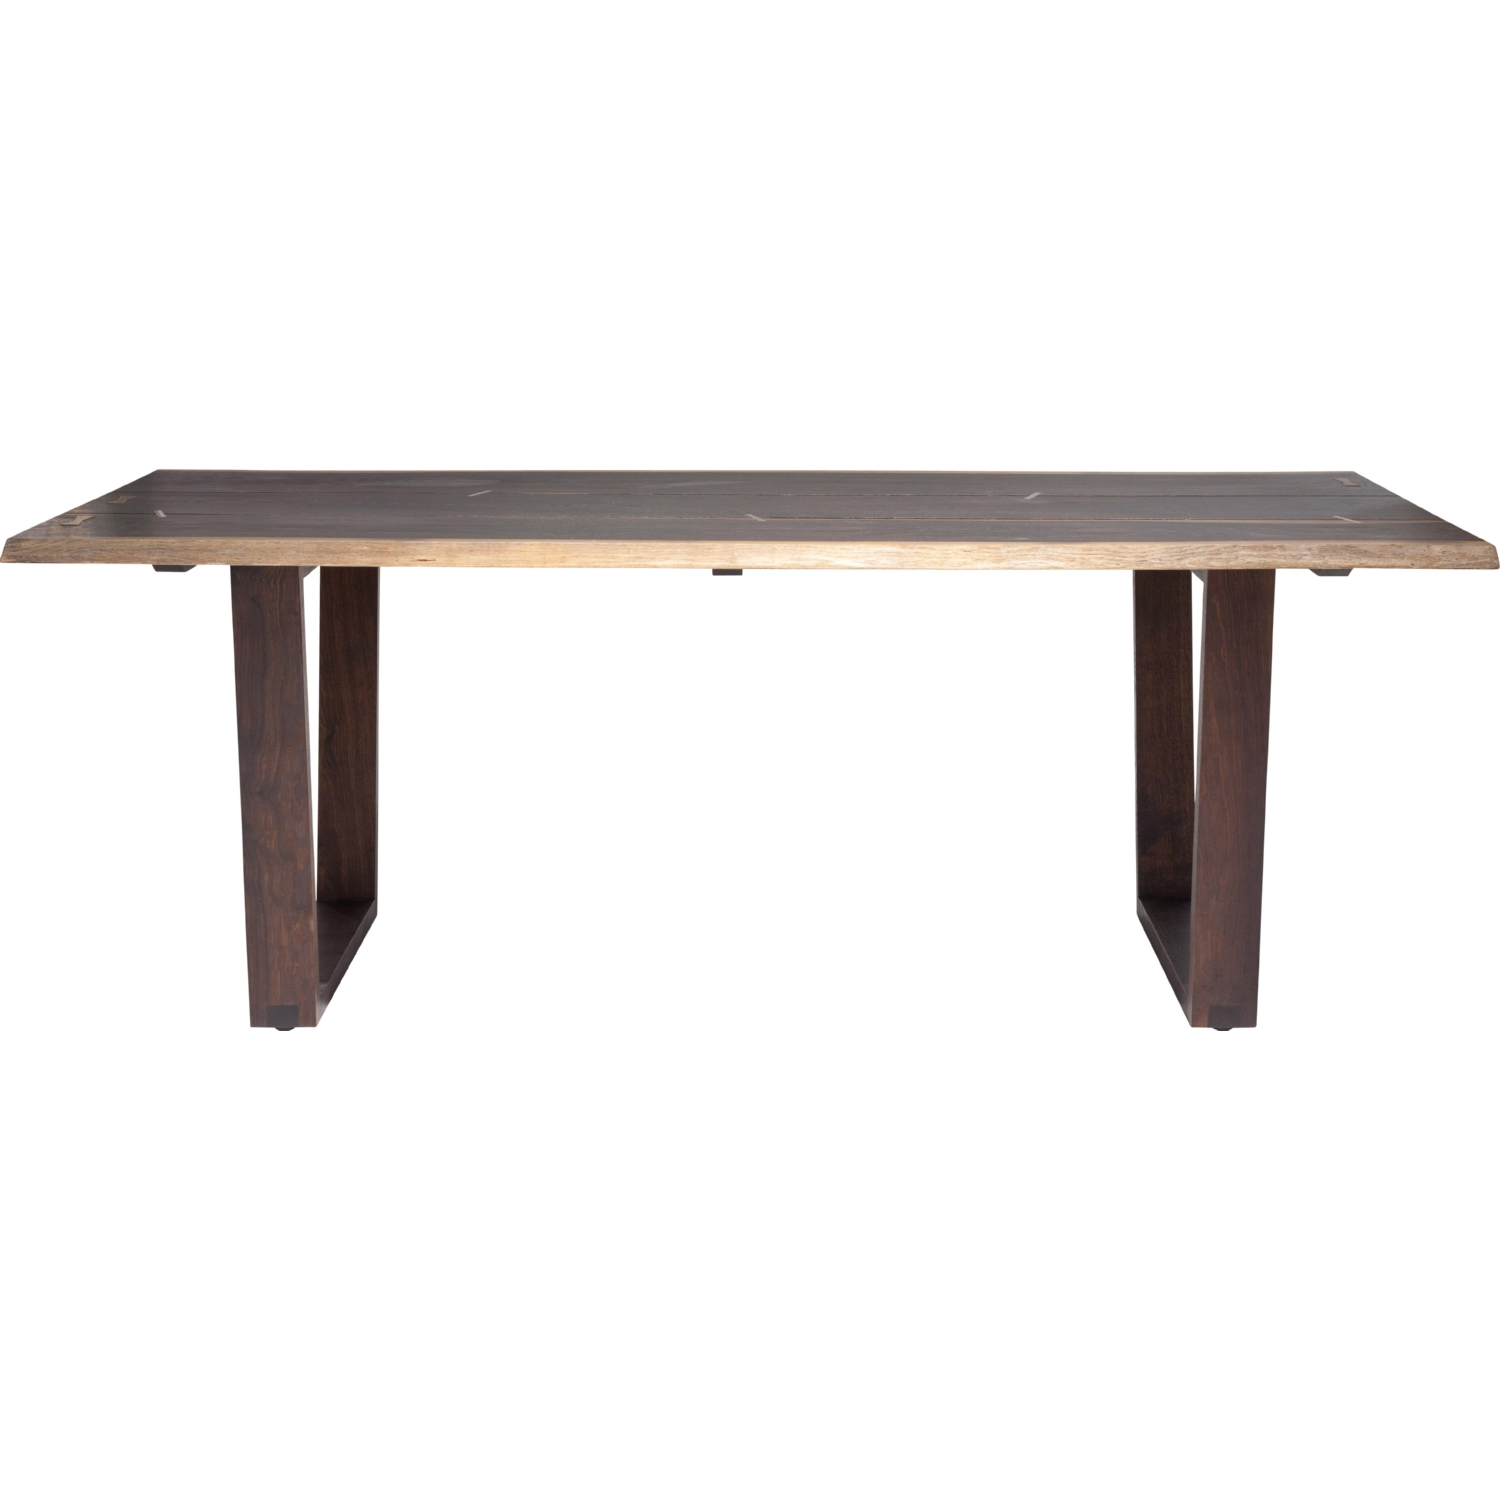 "Recent Napa 94"" Dining Table In Seared Oak W/ Brass Detailnuevo Modern Furniture For Dining Tables In Seared Oak With Brass Detail (View 28 of 30)"